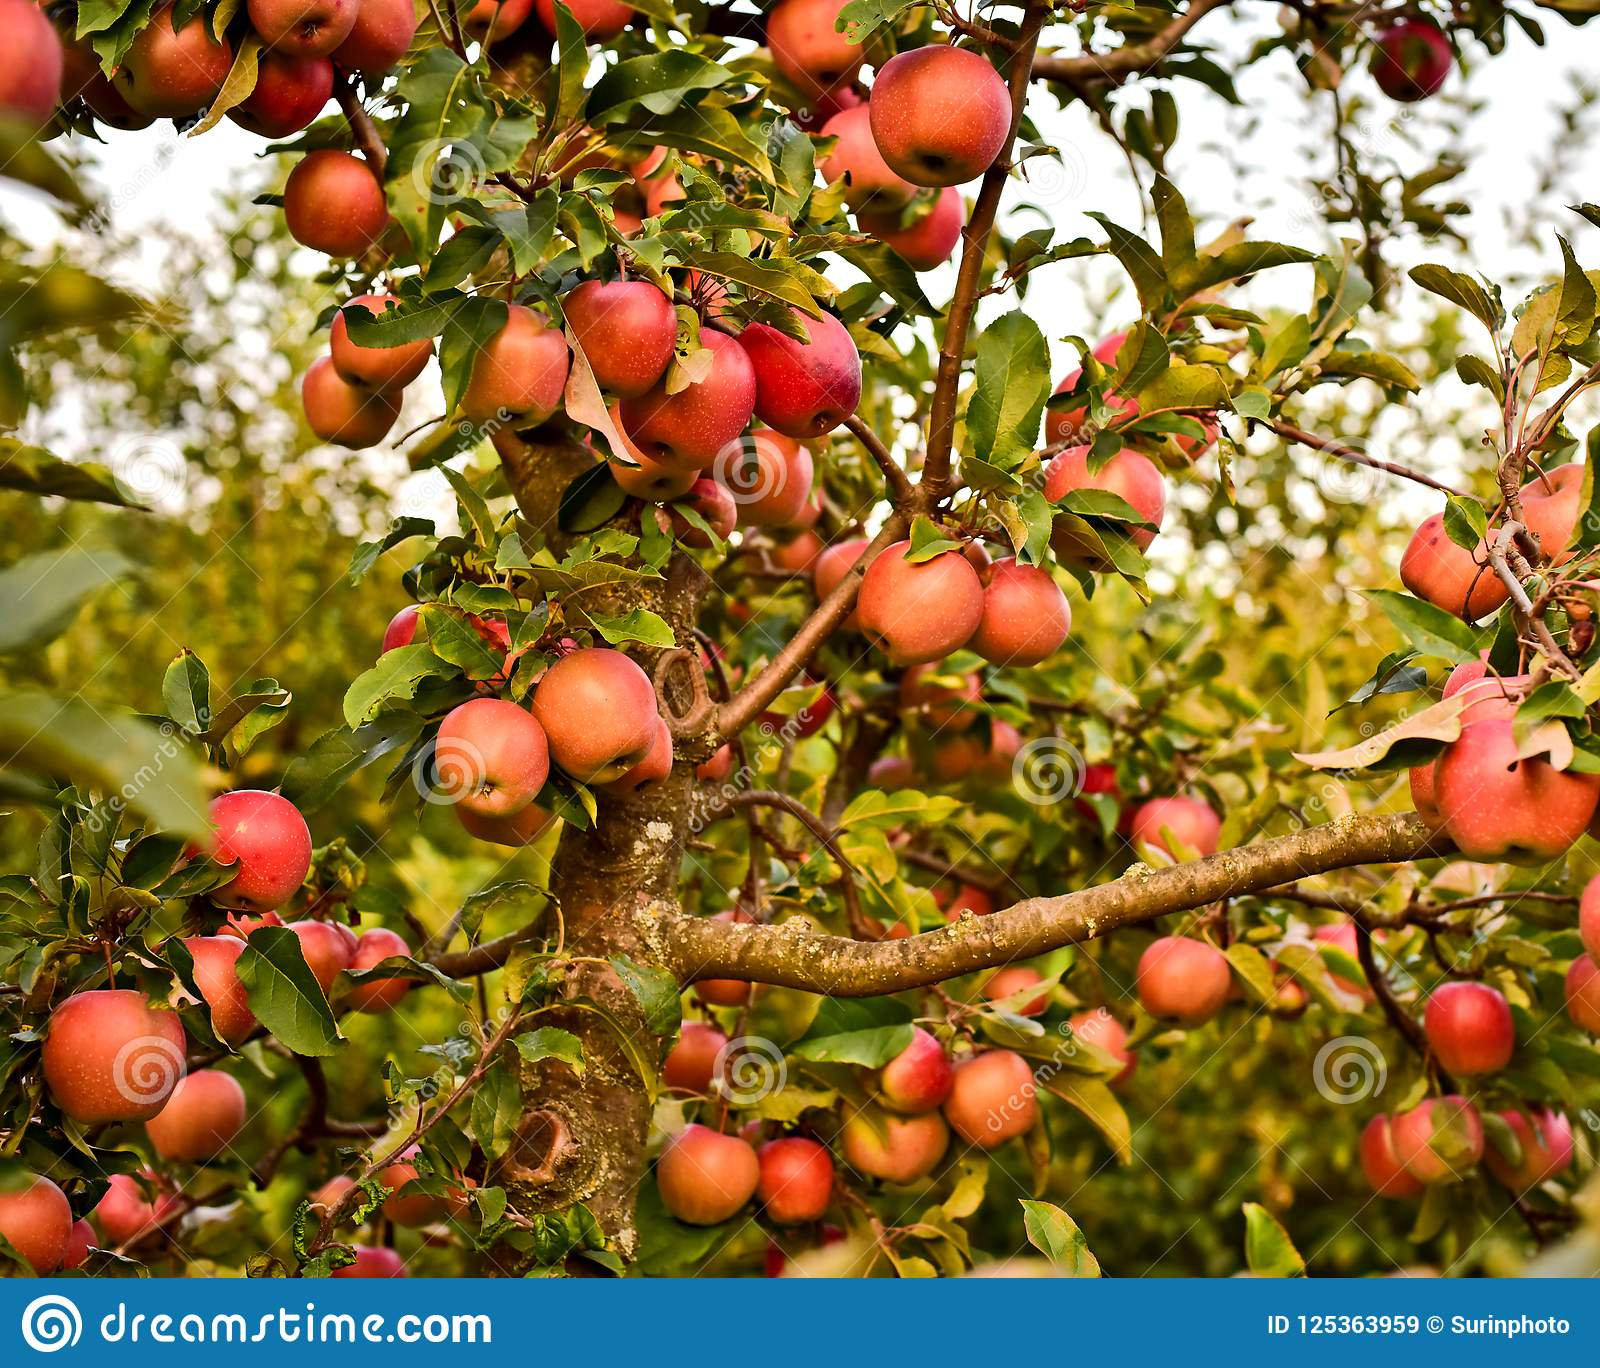 Trunk and branches of apple and many red apples